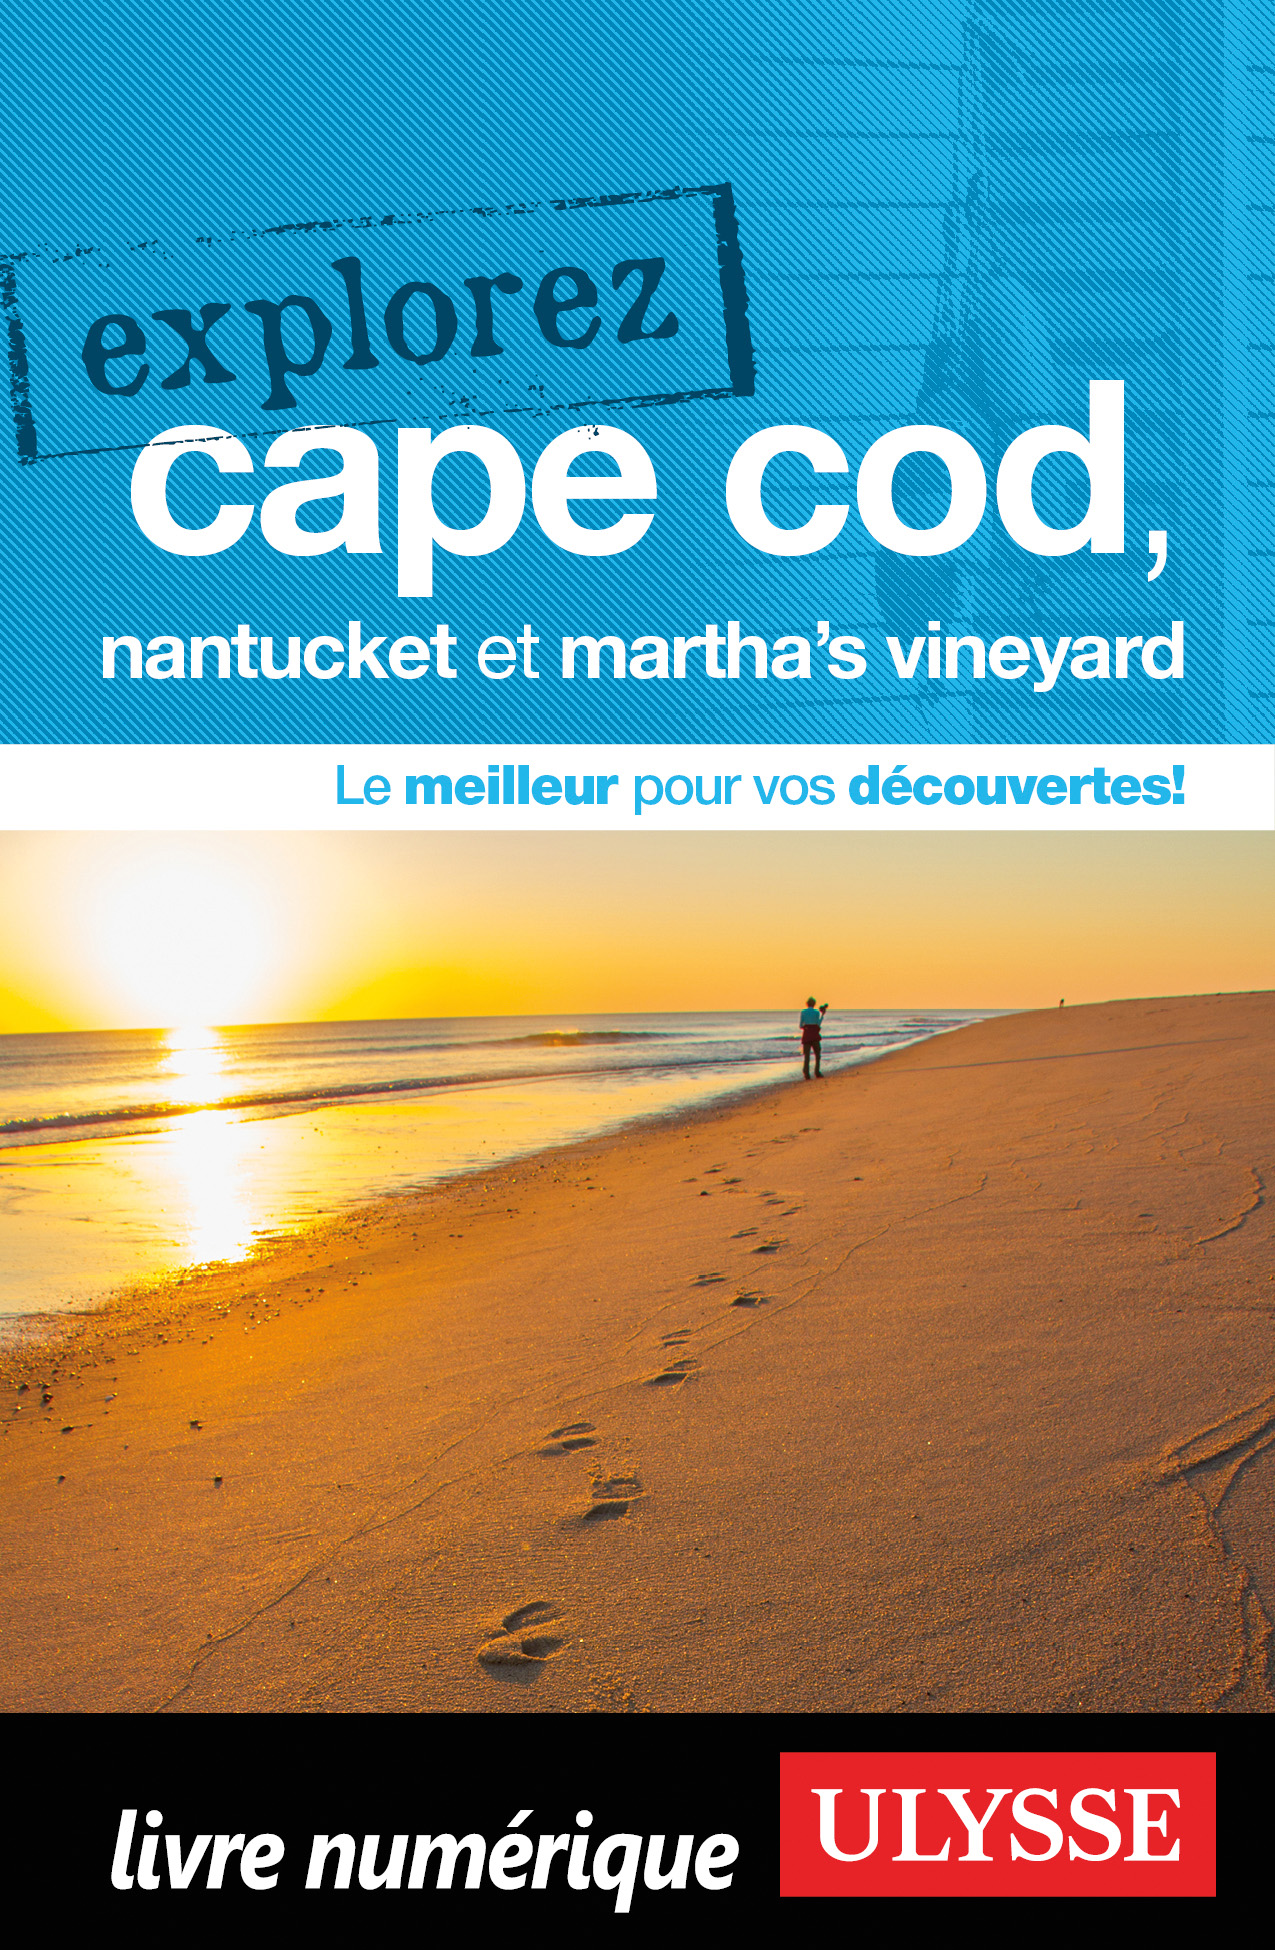 Vignette du livre Explorez Cape Cod, Nantucket et Martha's Vineyard